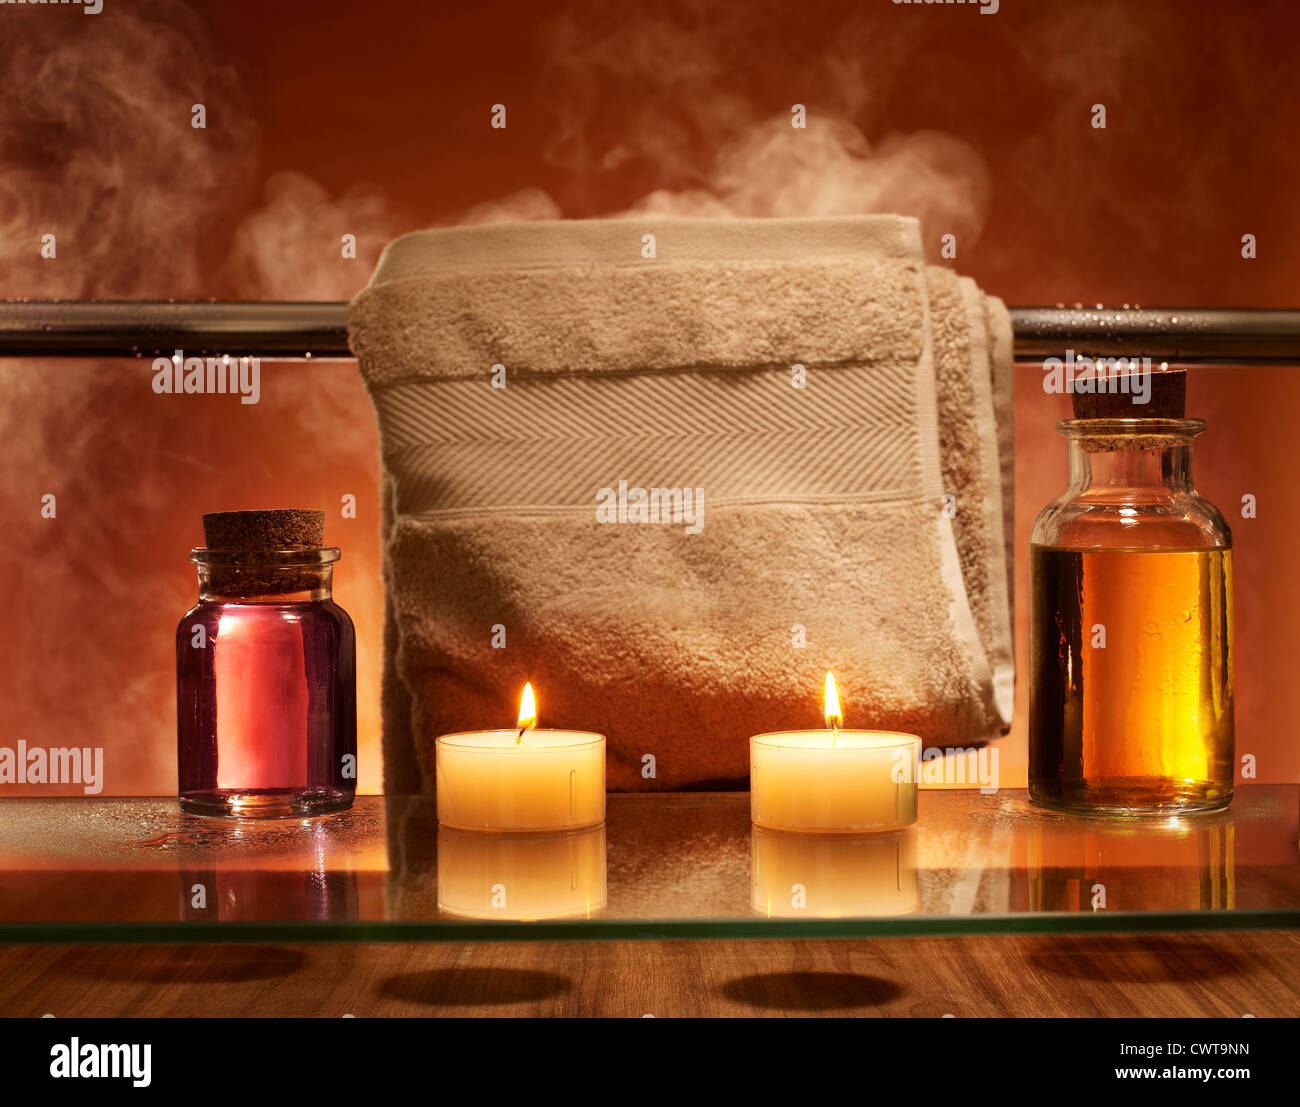 candles photos candles images alamy. Black Bedroom Furniture Sets. Home Design Ideas